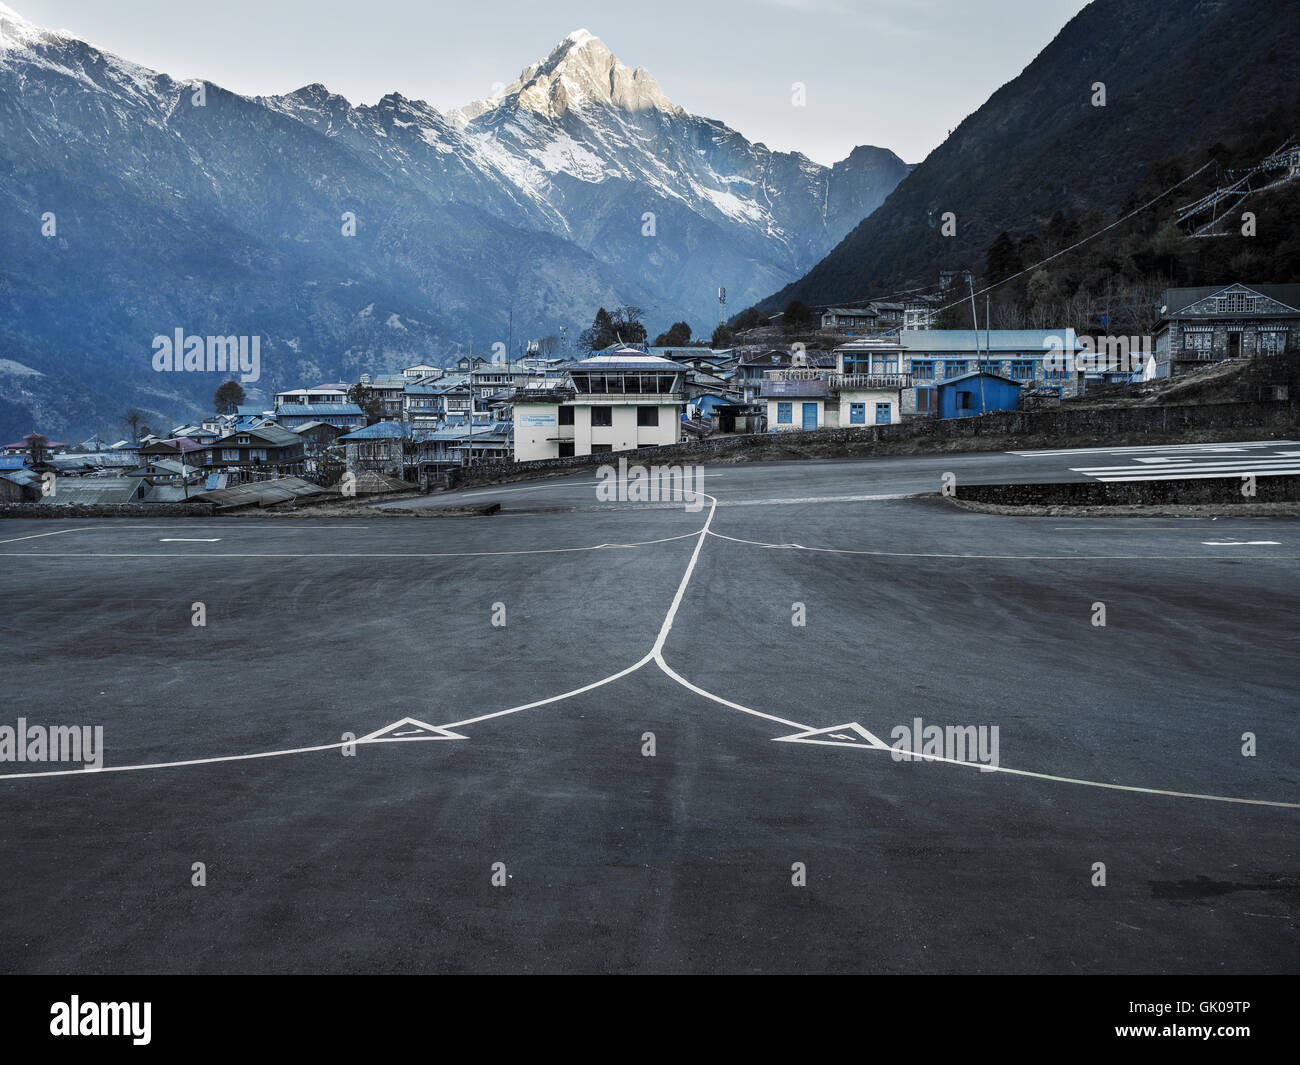 A runway at the Lukla Airport in Lukla, Nepal, which is a gateway to Everest Base Camp. - Stock Image